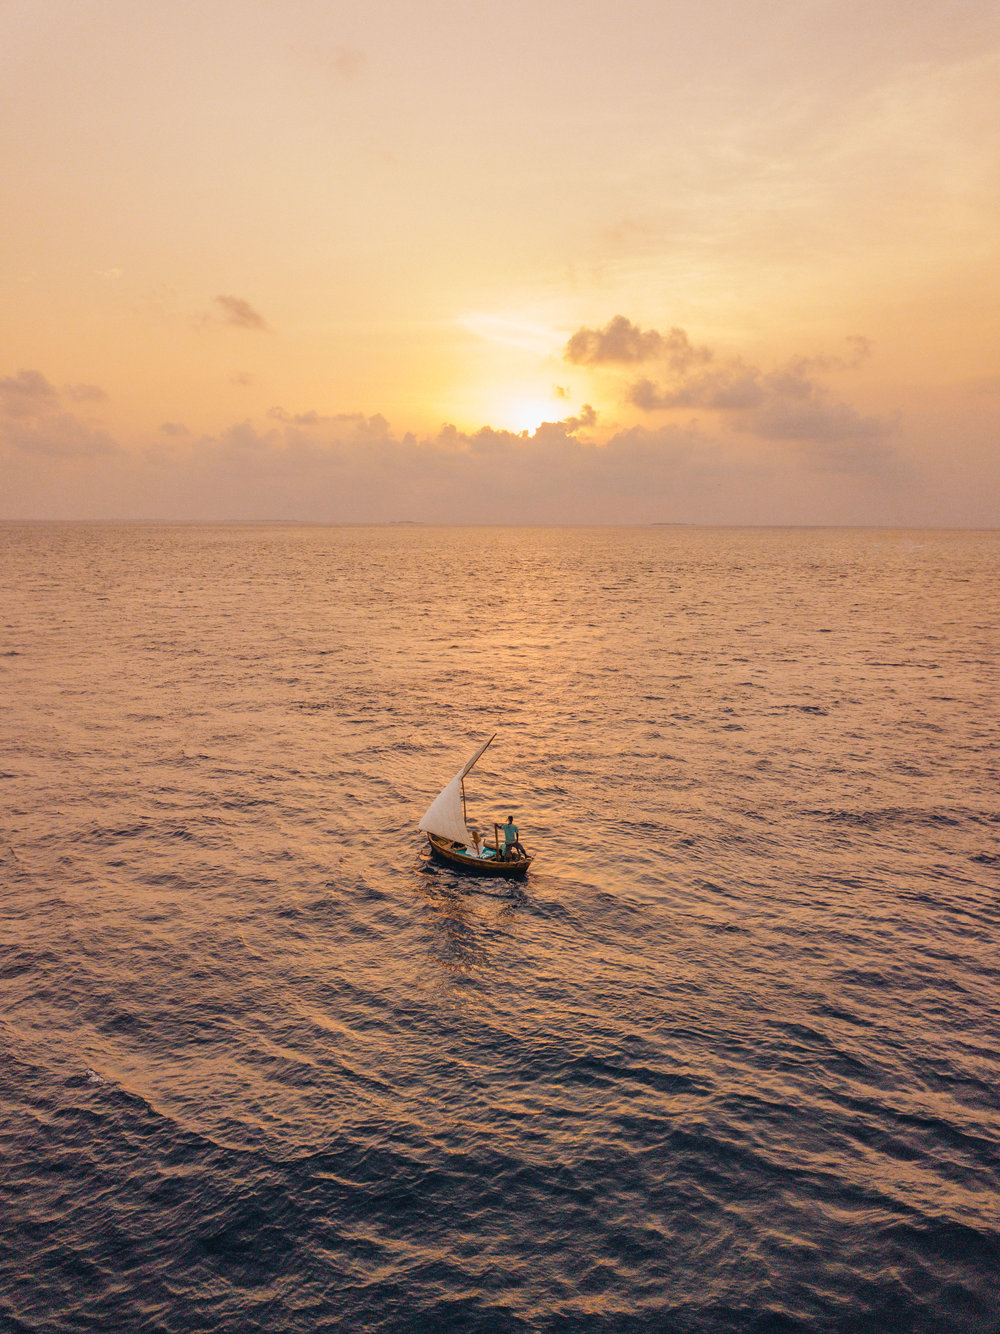 5:30 PM  // Sunset cruise on Fushifaru's little Dhony! Sailing into the sunset on this tiny traditional Maldivian boat was pure magic and the perfect way to spend a sunset!